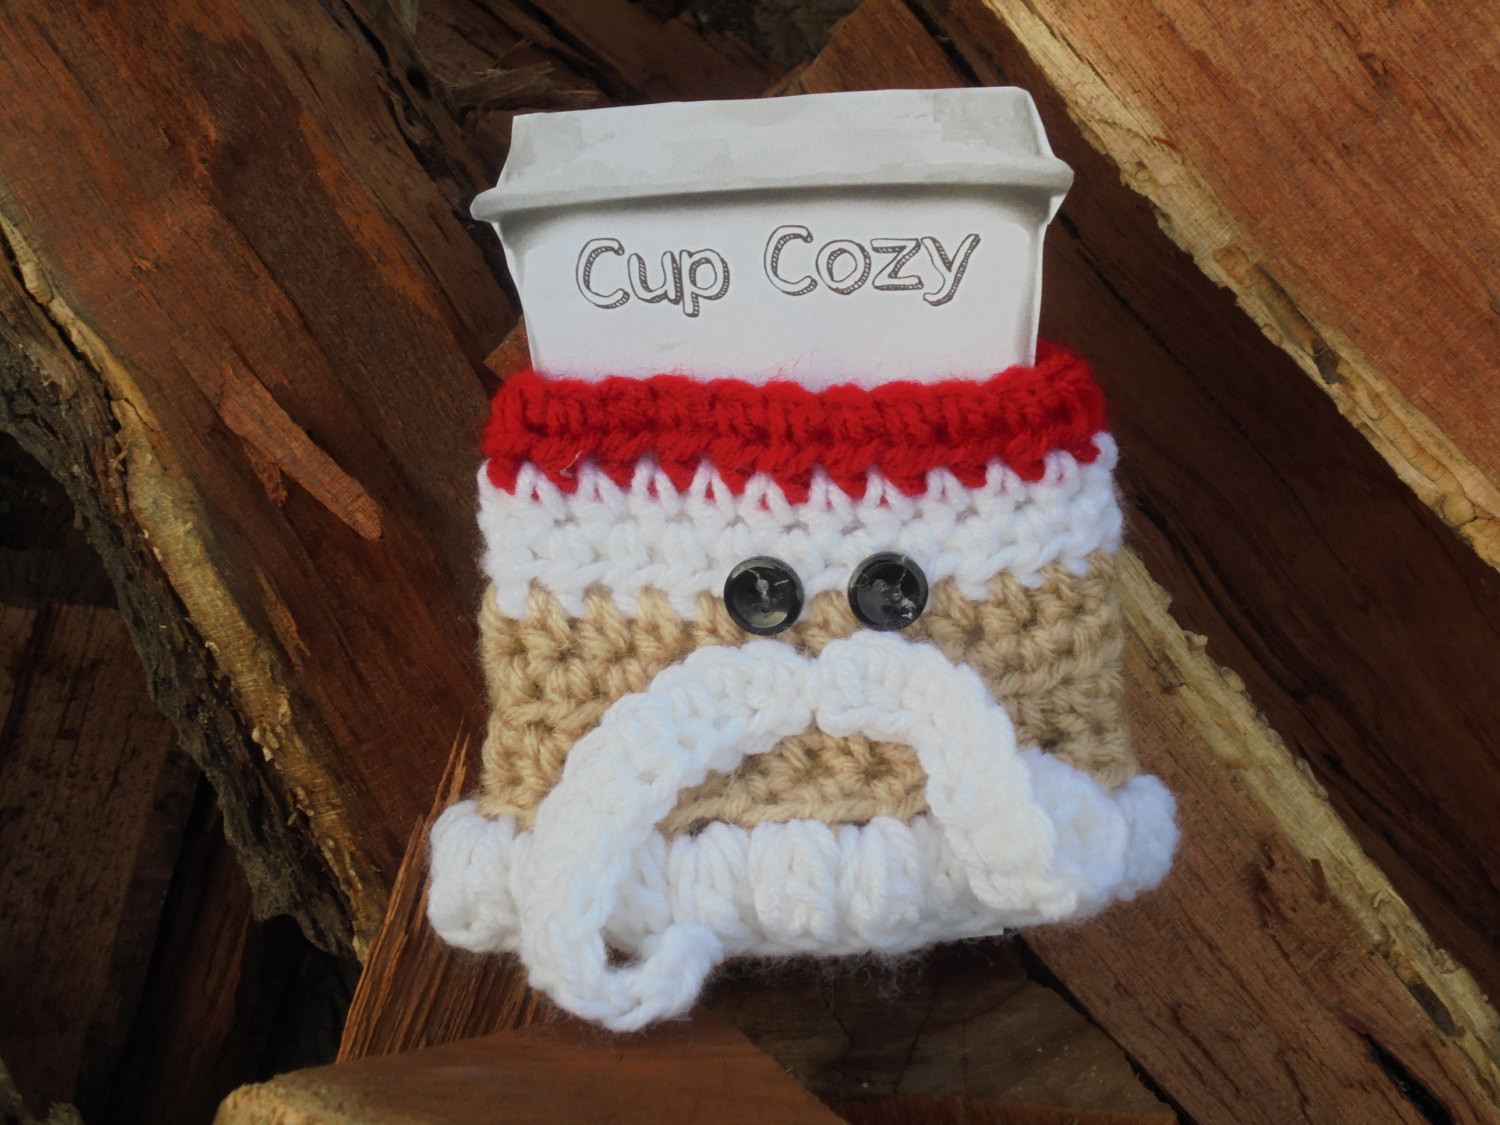 Inspirational Coffee Cup Cozy Christmas Coffee Cup Cozy Santa Coffee Coffee Cup Cozy Of Awesome 47 Images Coffee Cup Cozy